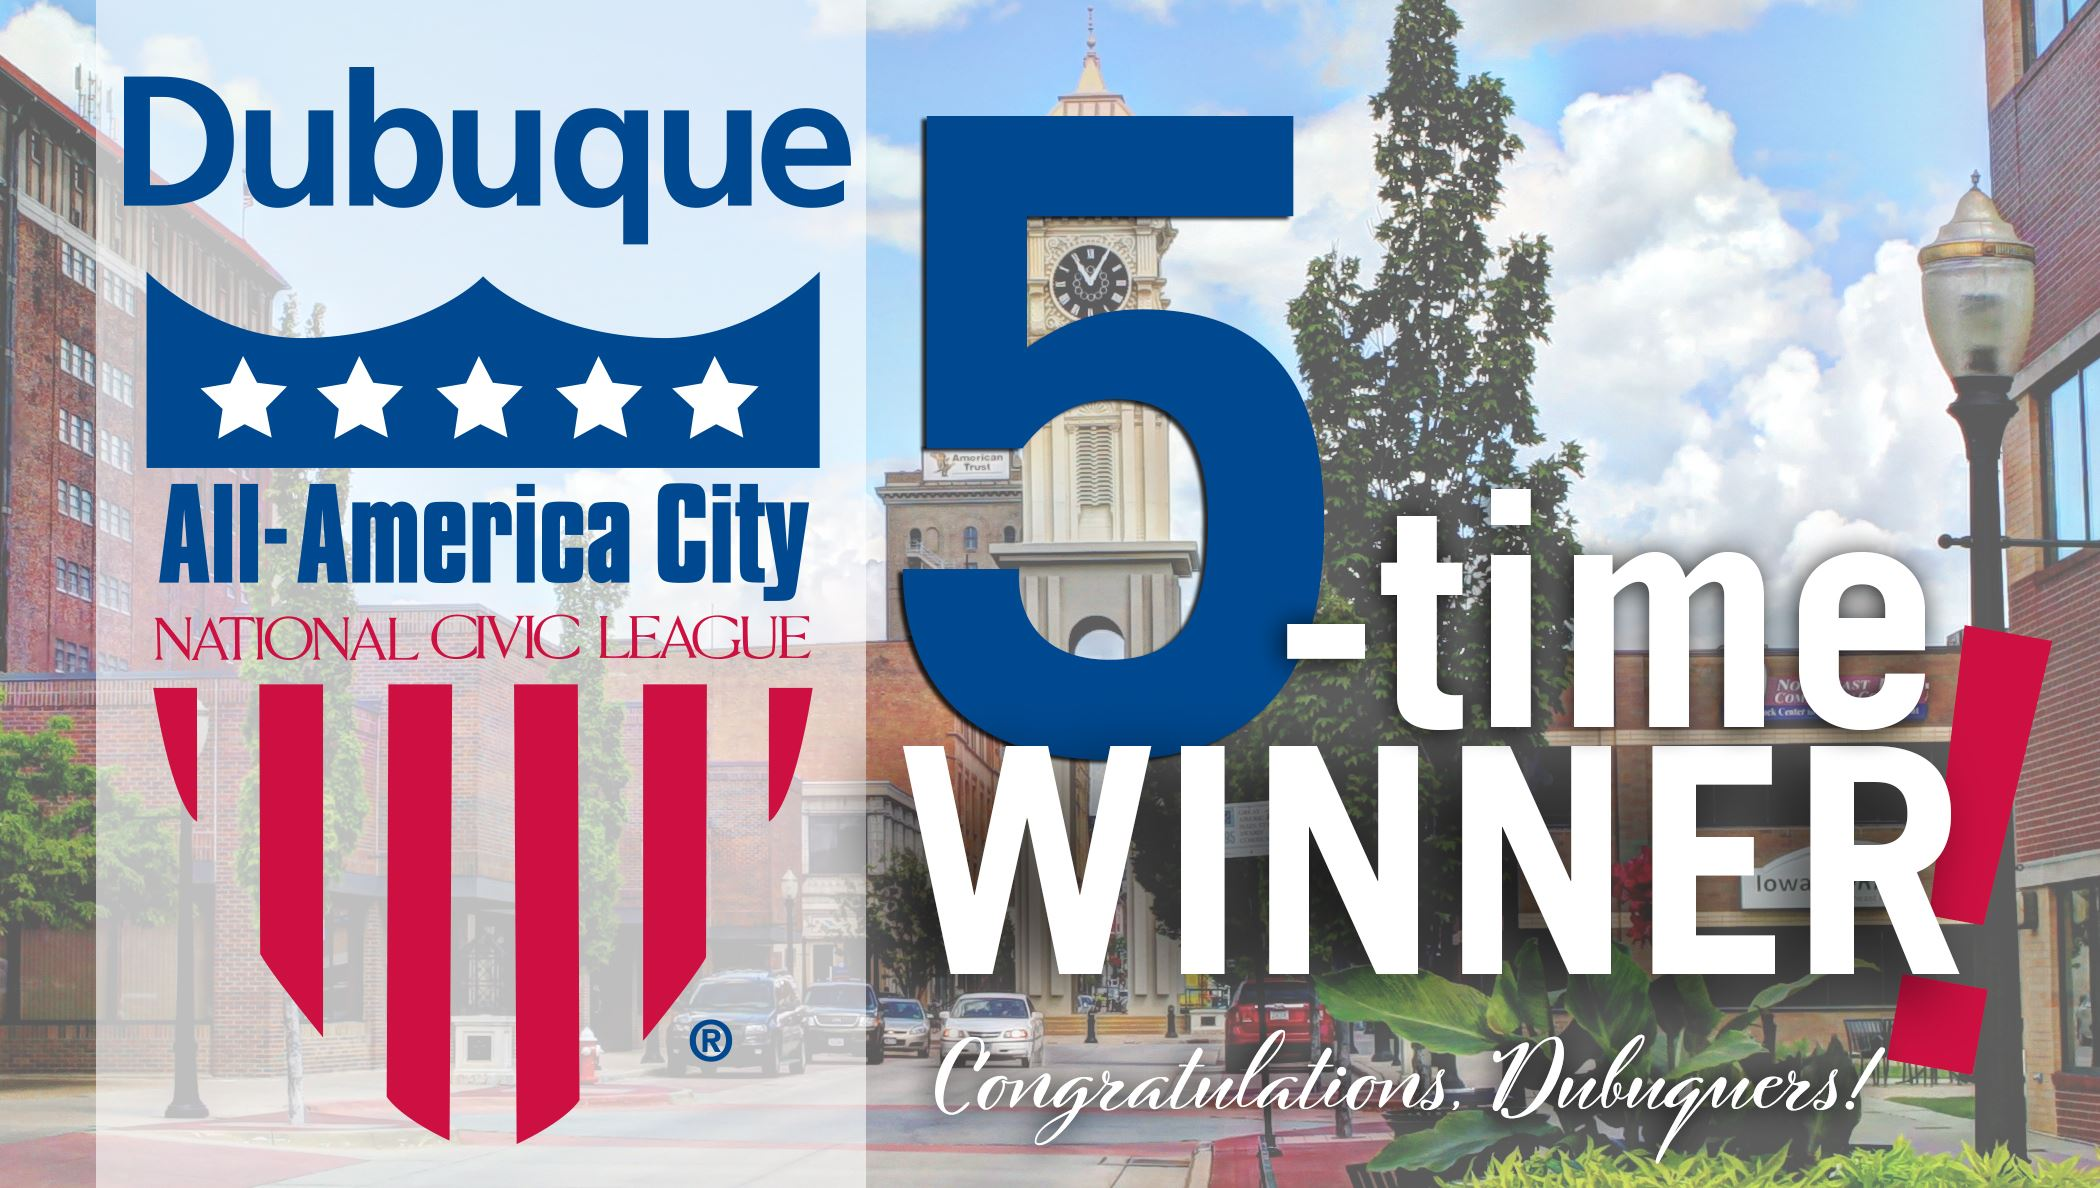 Dubuque is a 5-time All-America City Winner